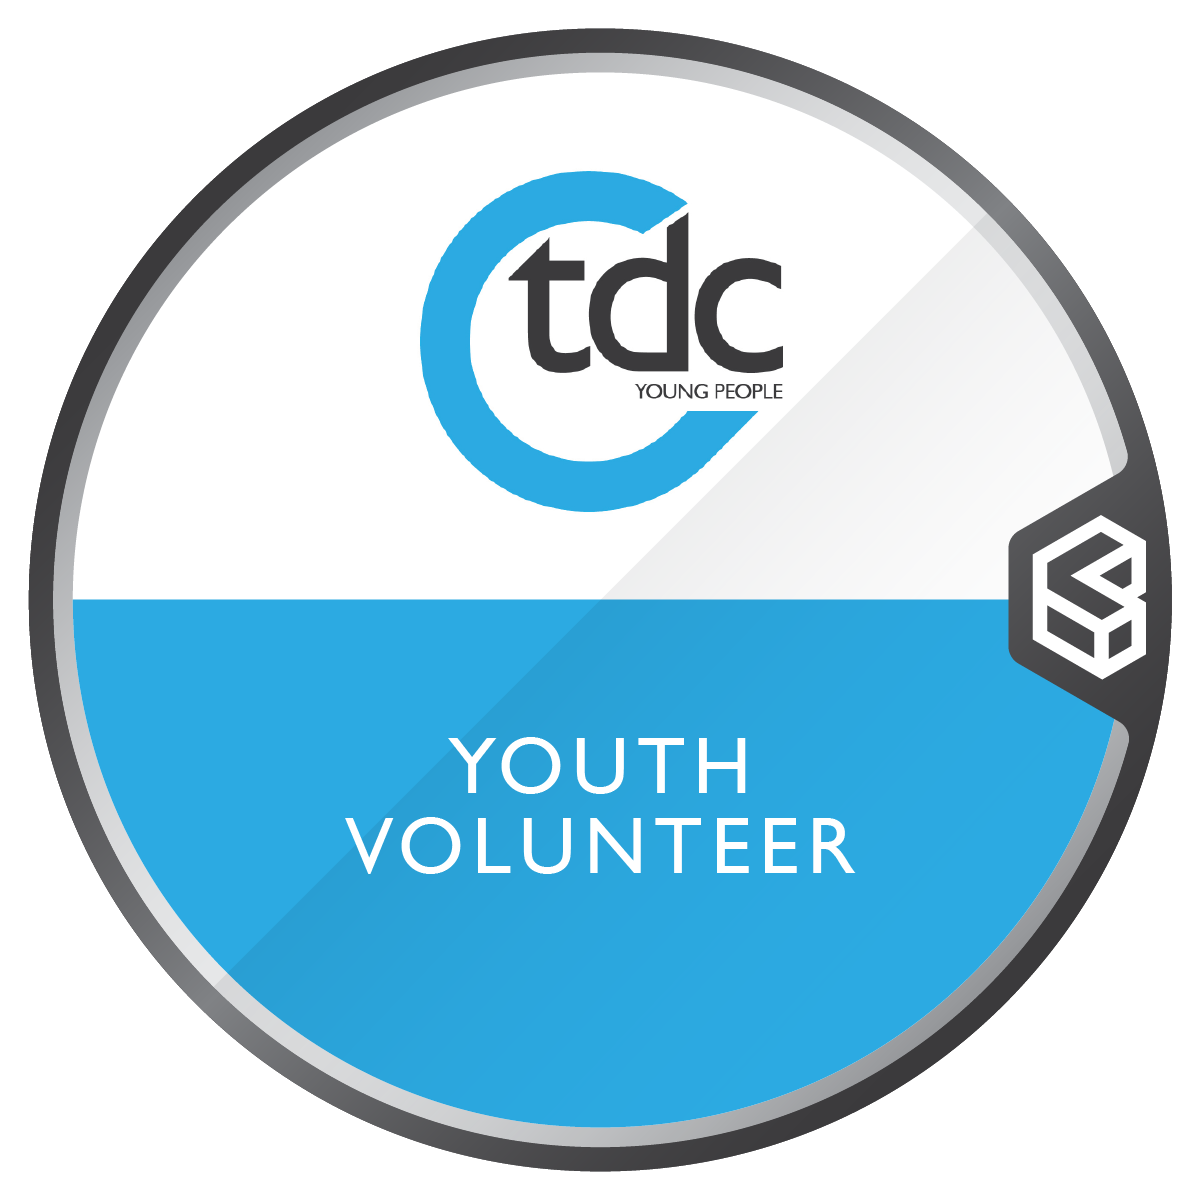 TDC Youth Volunteering and Social Action